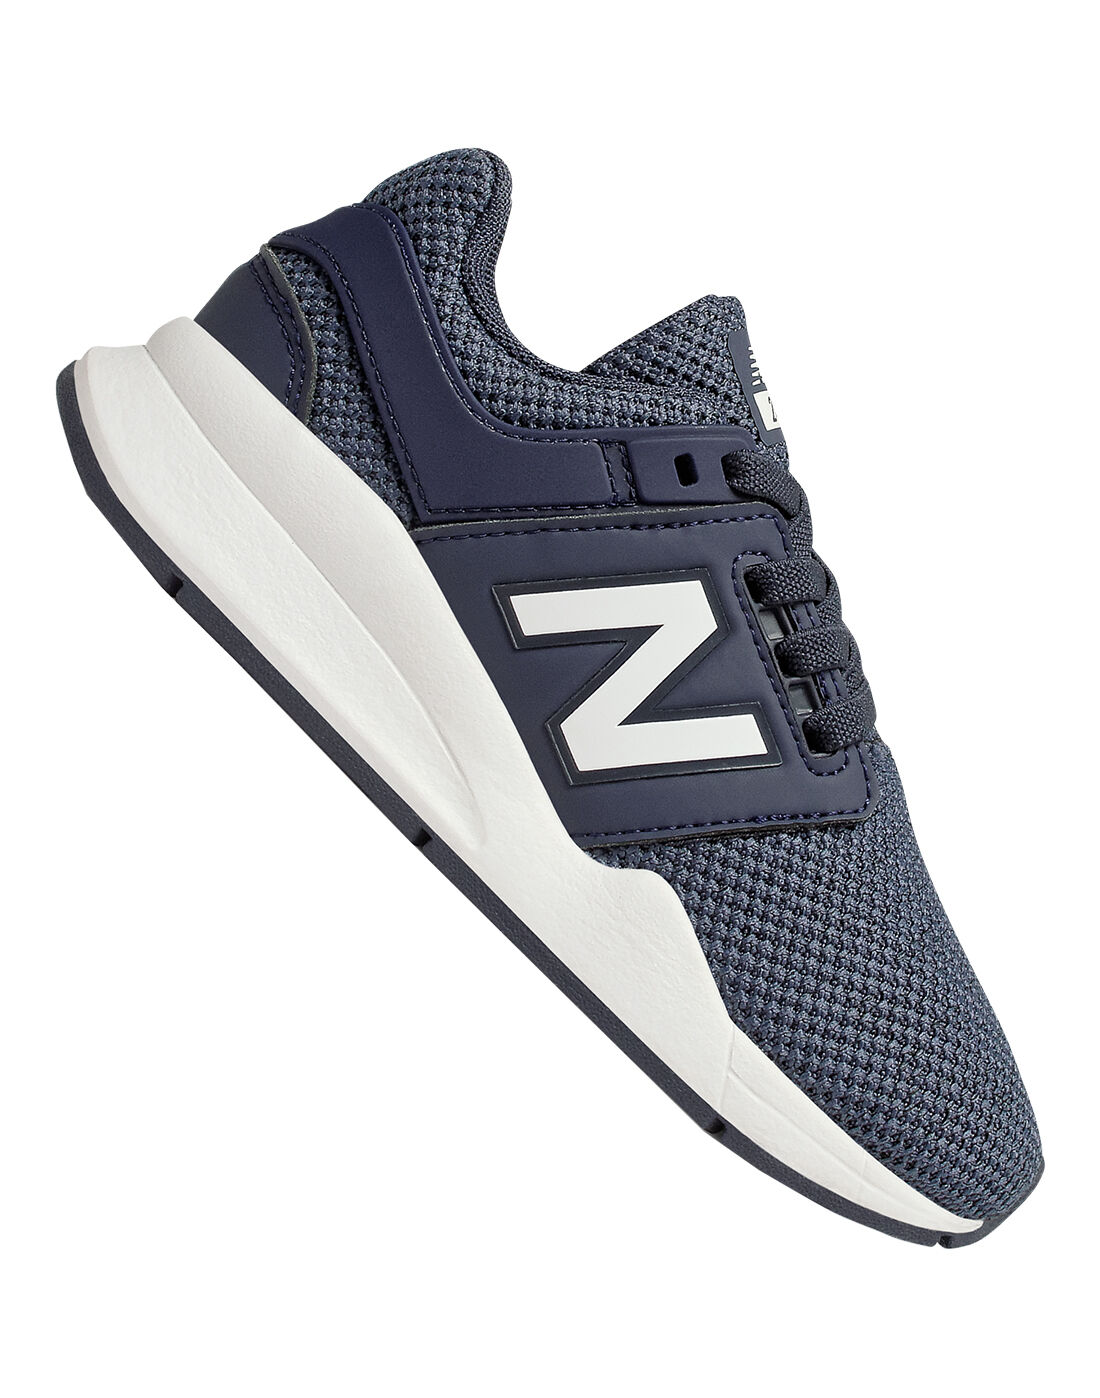 Young Kid's Navy New Balance 247 Trainers | Life Style Sports